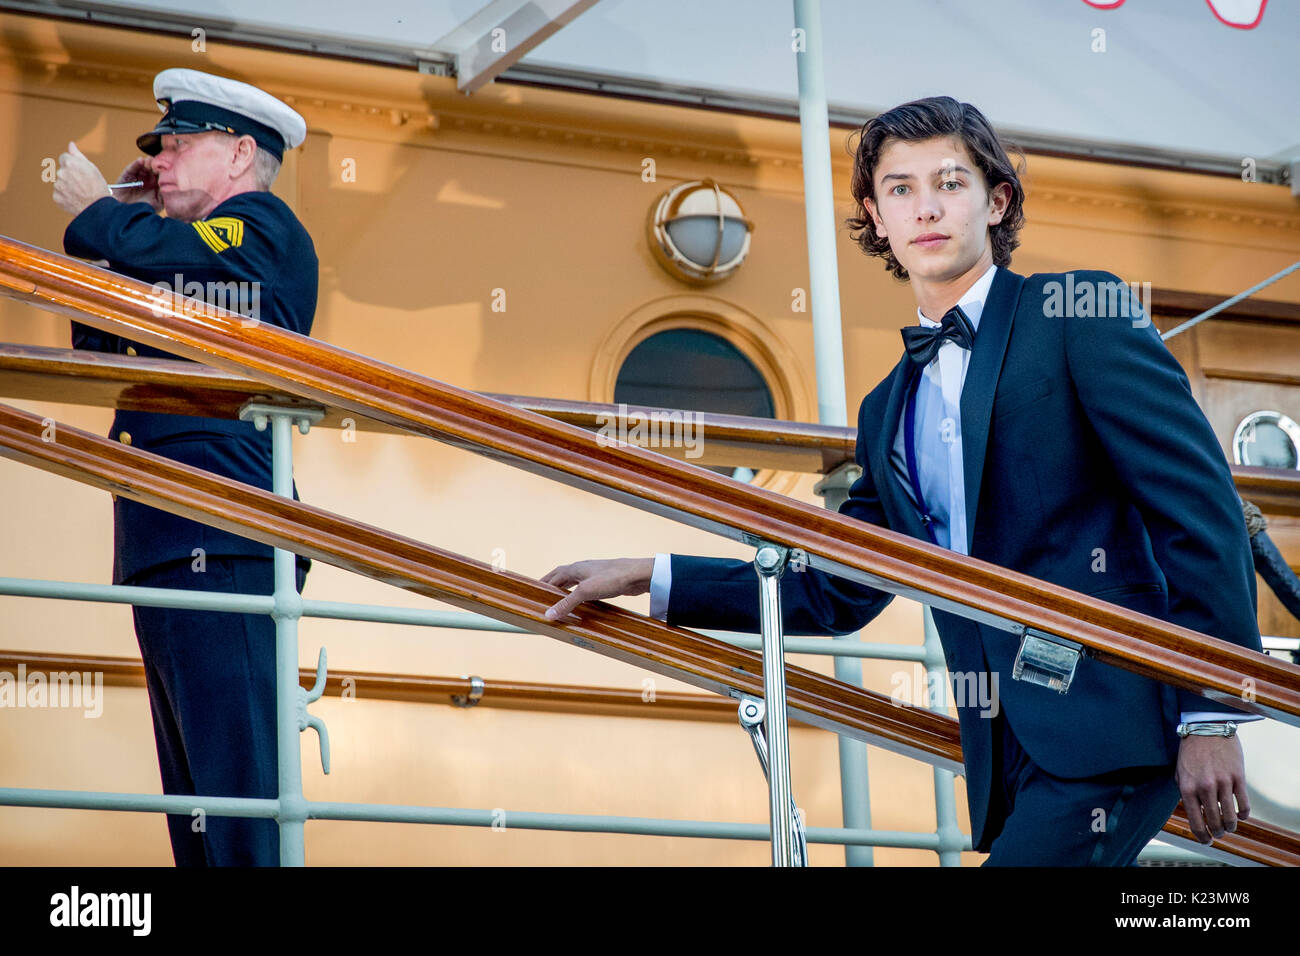 Copenhagen, Denmark. 29th Aug, 2017. 18th birthday of Prince Nikolai at royal ship de Dannebrog in Copenhagen, Denmark, 29 August 2017. Photo: Patrick van Katwijk /Netherlands OUT/Point De Vue Out - NO WIRE SERVICE - Photo: Patrick van Katwijk/Dutch Photo Press/dpa/Alamy Live News - Stock Image